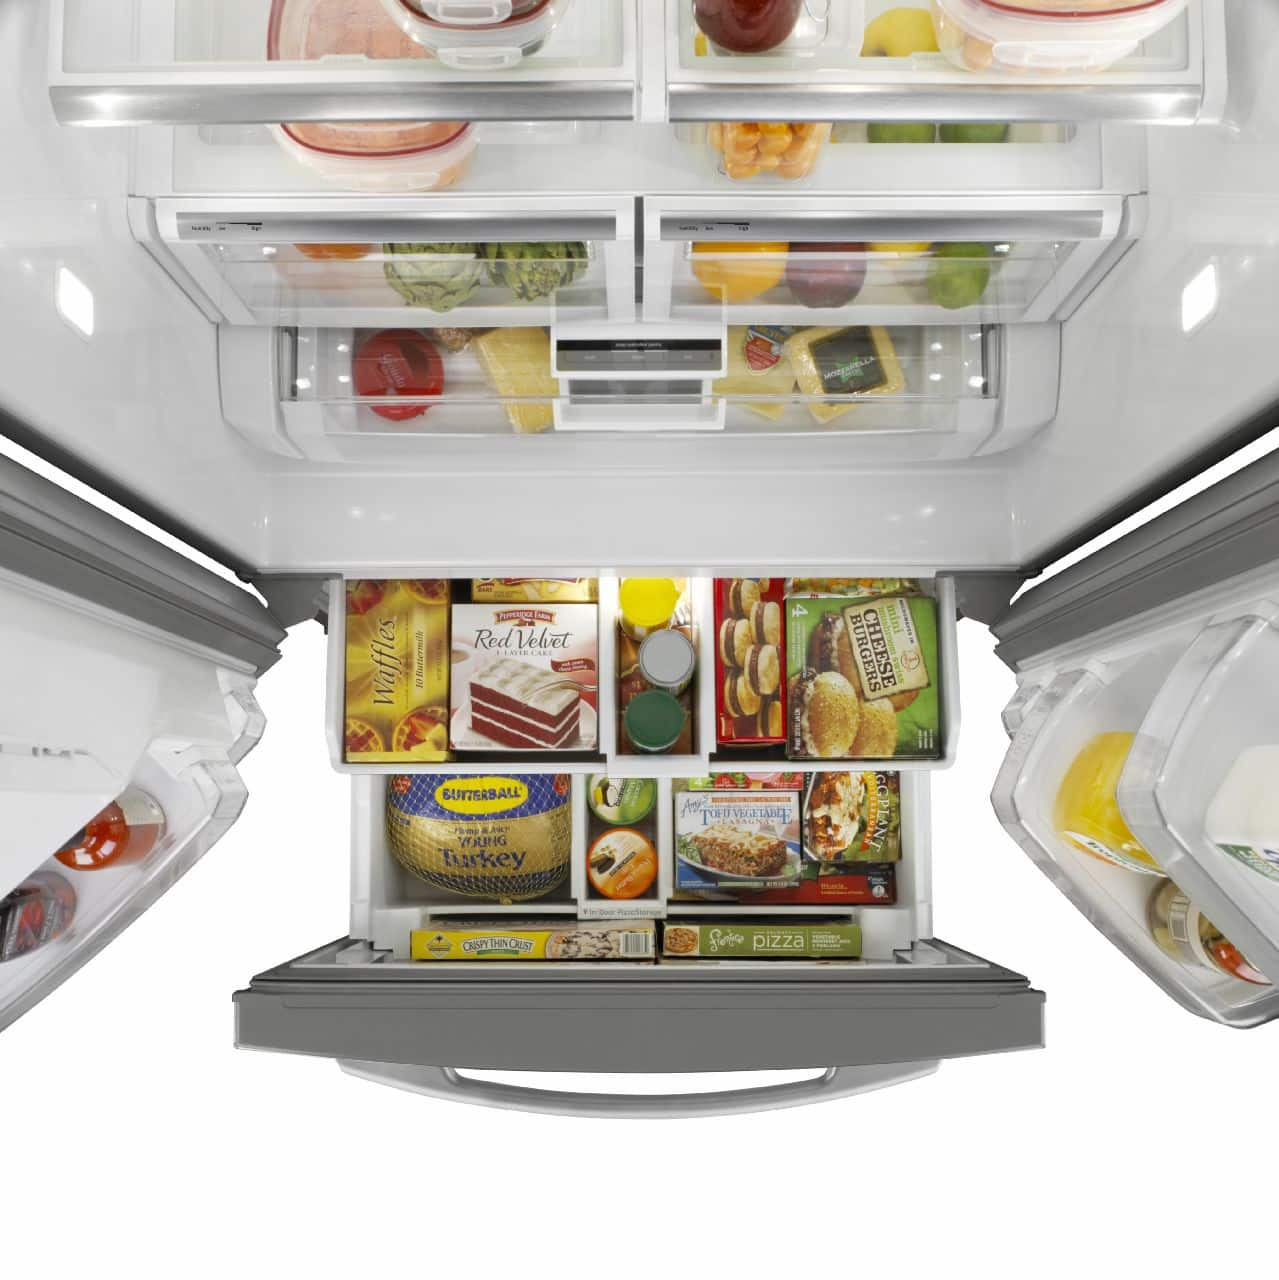 Refrigerator Repair: How To Remove And Prevent Ice Build